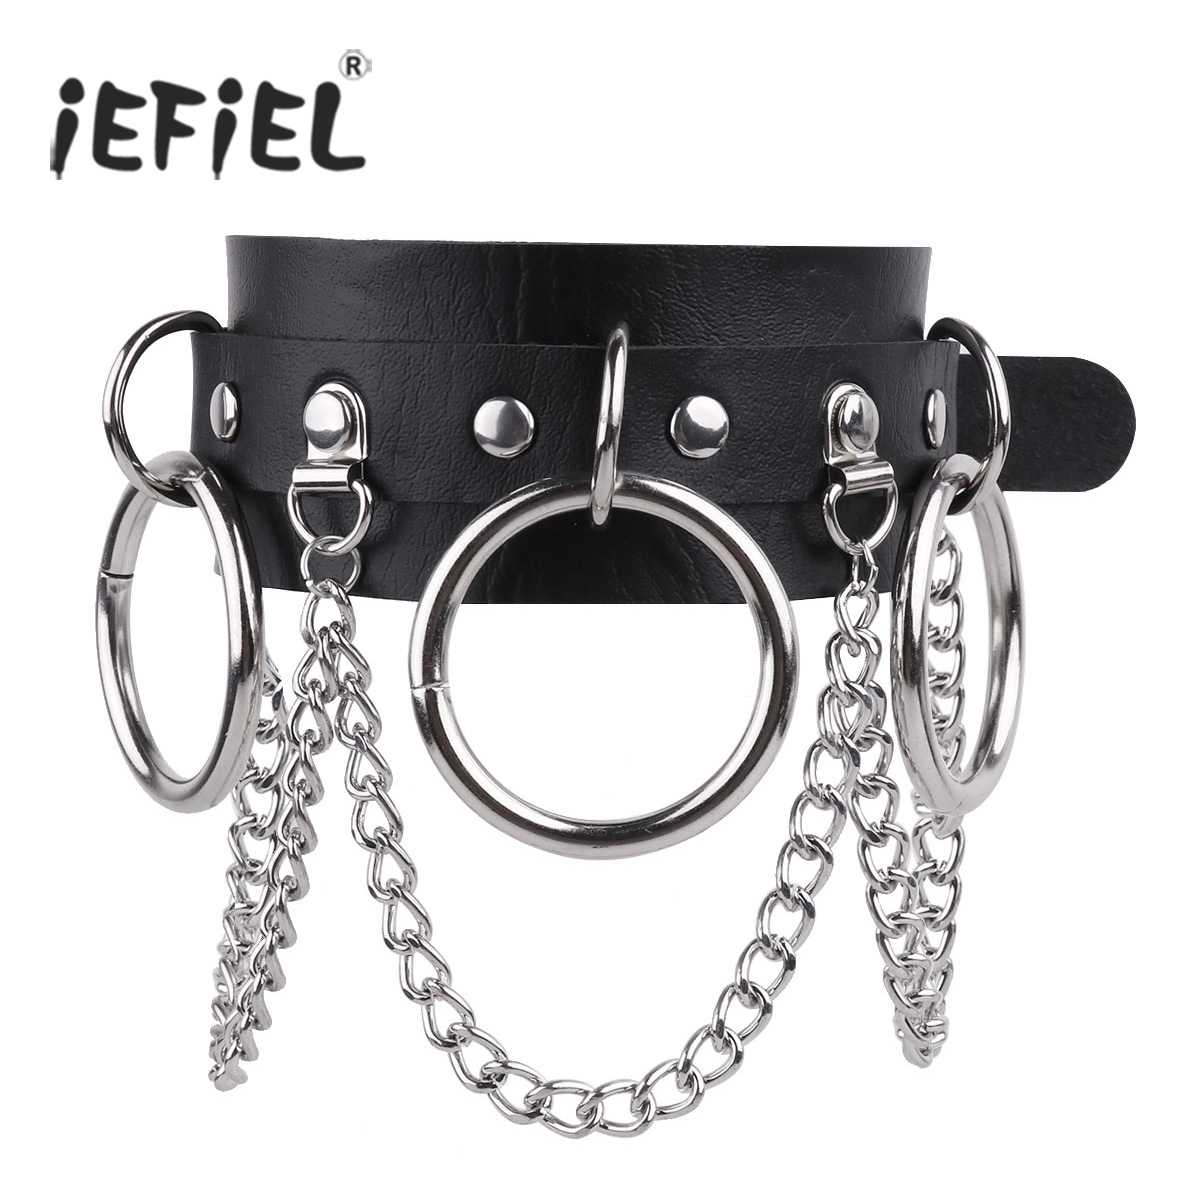 Unisex Punk Flexible PU Leather Adjustable Choker Necklace Neck Collar with Metal O-Rings and Chains for Nighclub Costumes